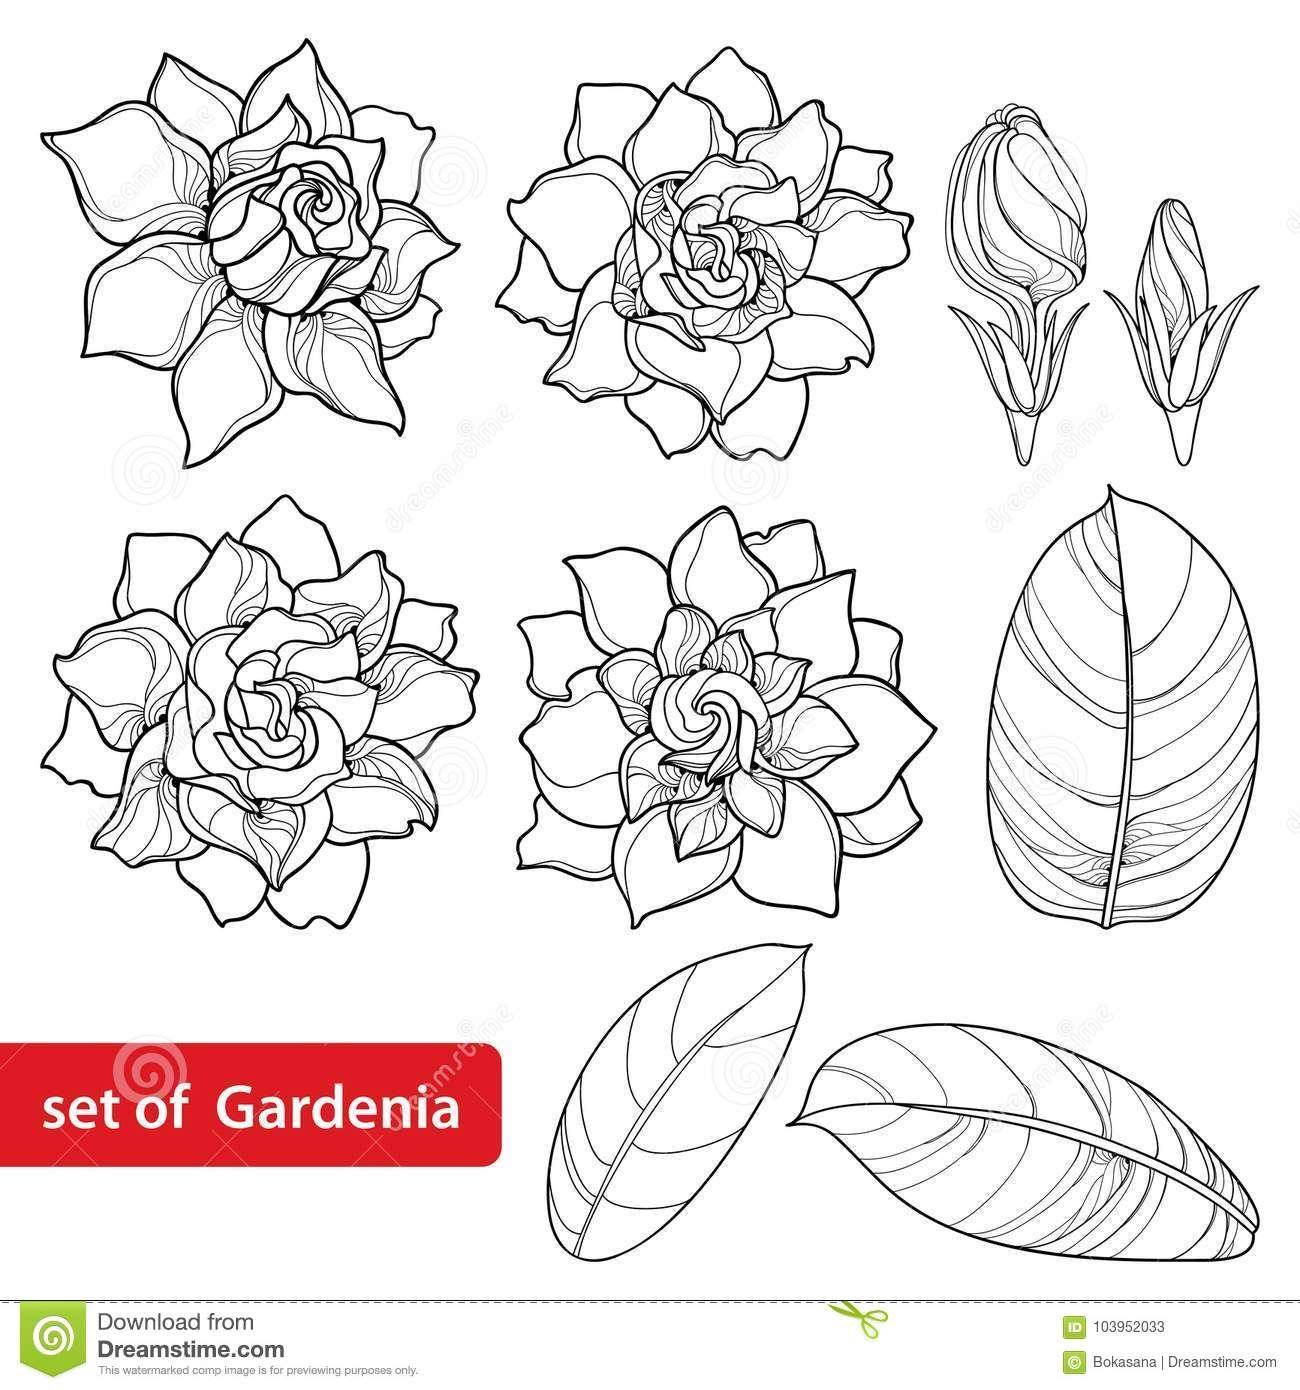 Vector Set With Outline Gardenia Flower Ornate Bud And Leaves In Black Isolated On White Background Stock Vector Il Gardenia Tattoo Flower Drawing Gardenia